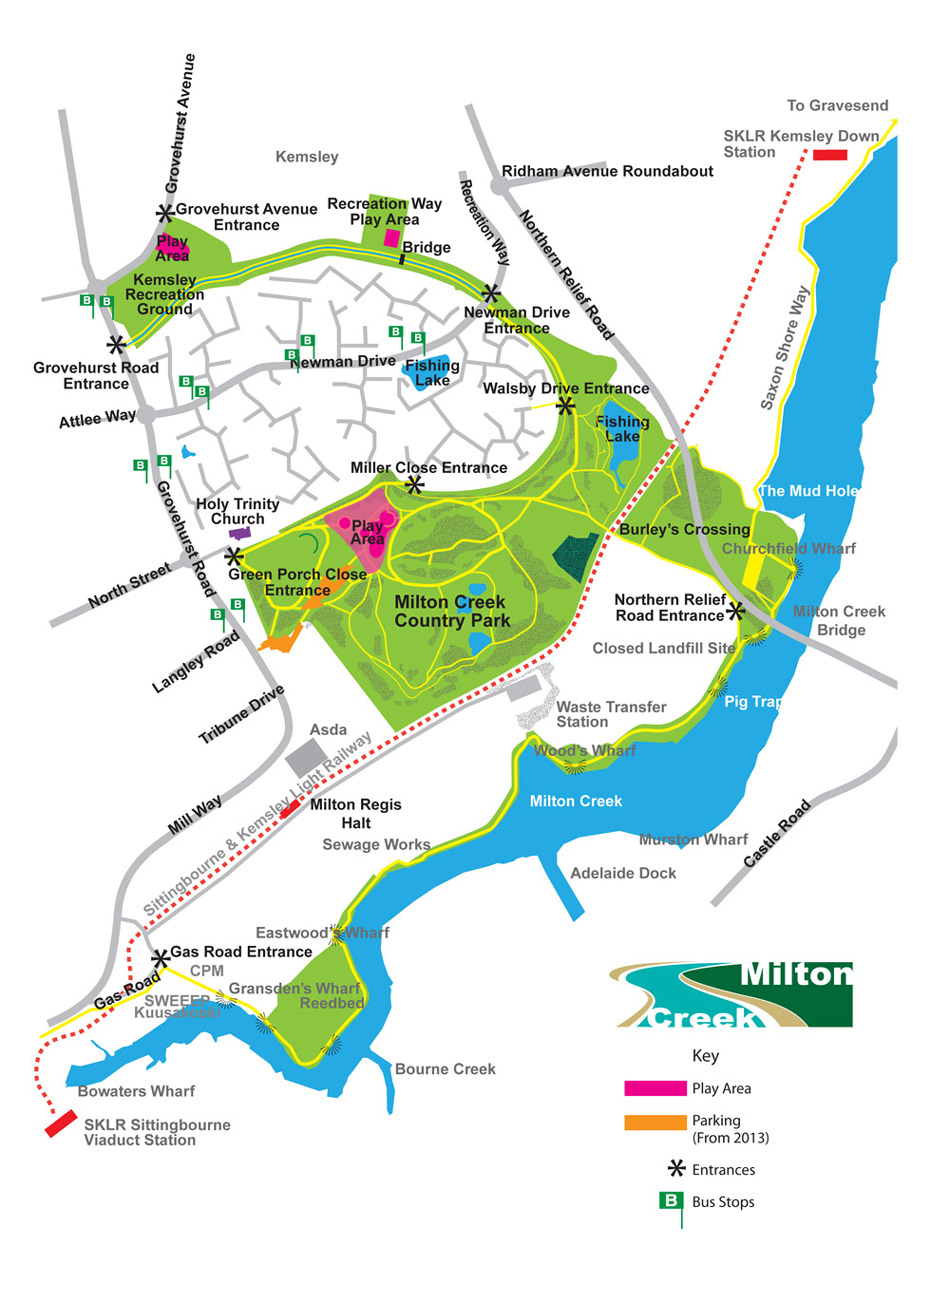 A map of the Milton Creek Country Park